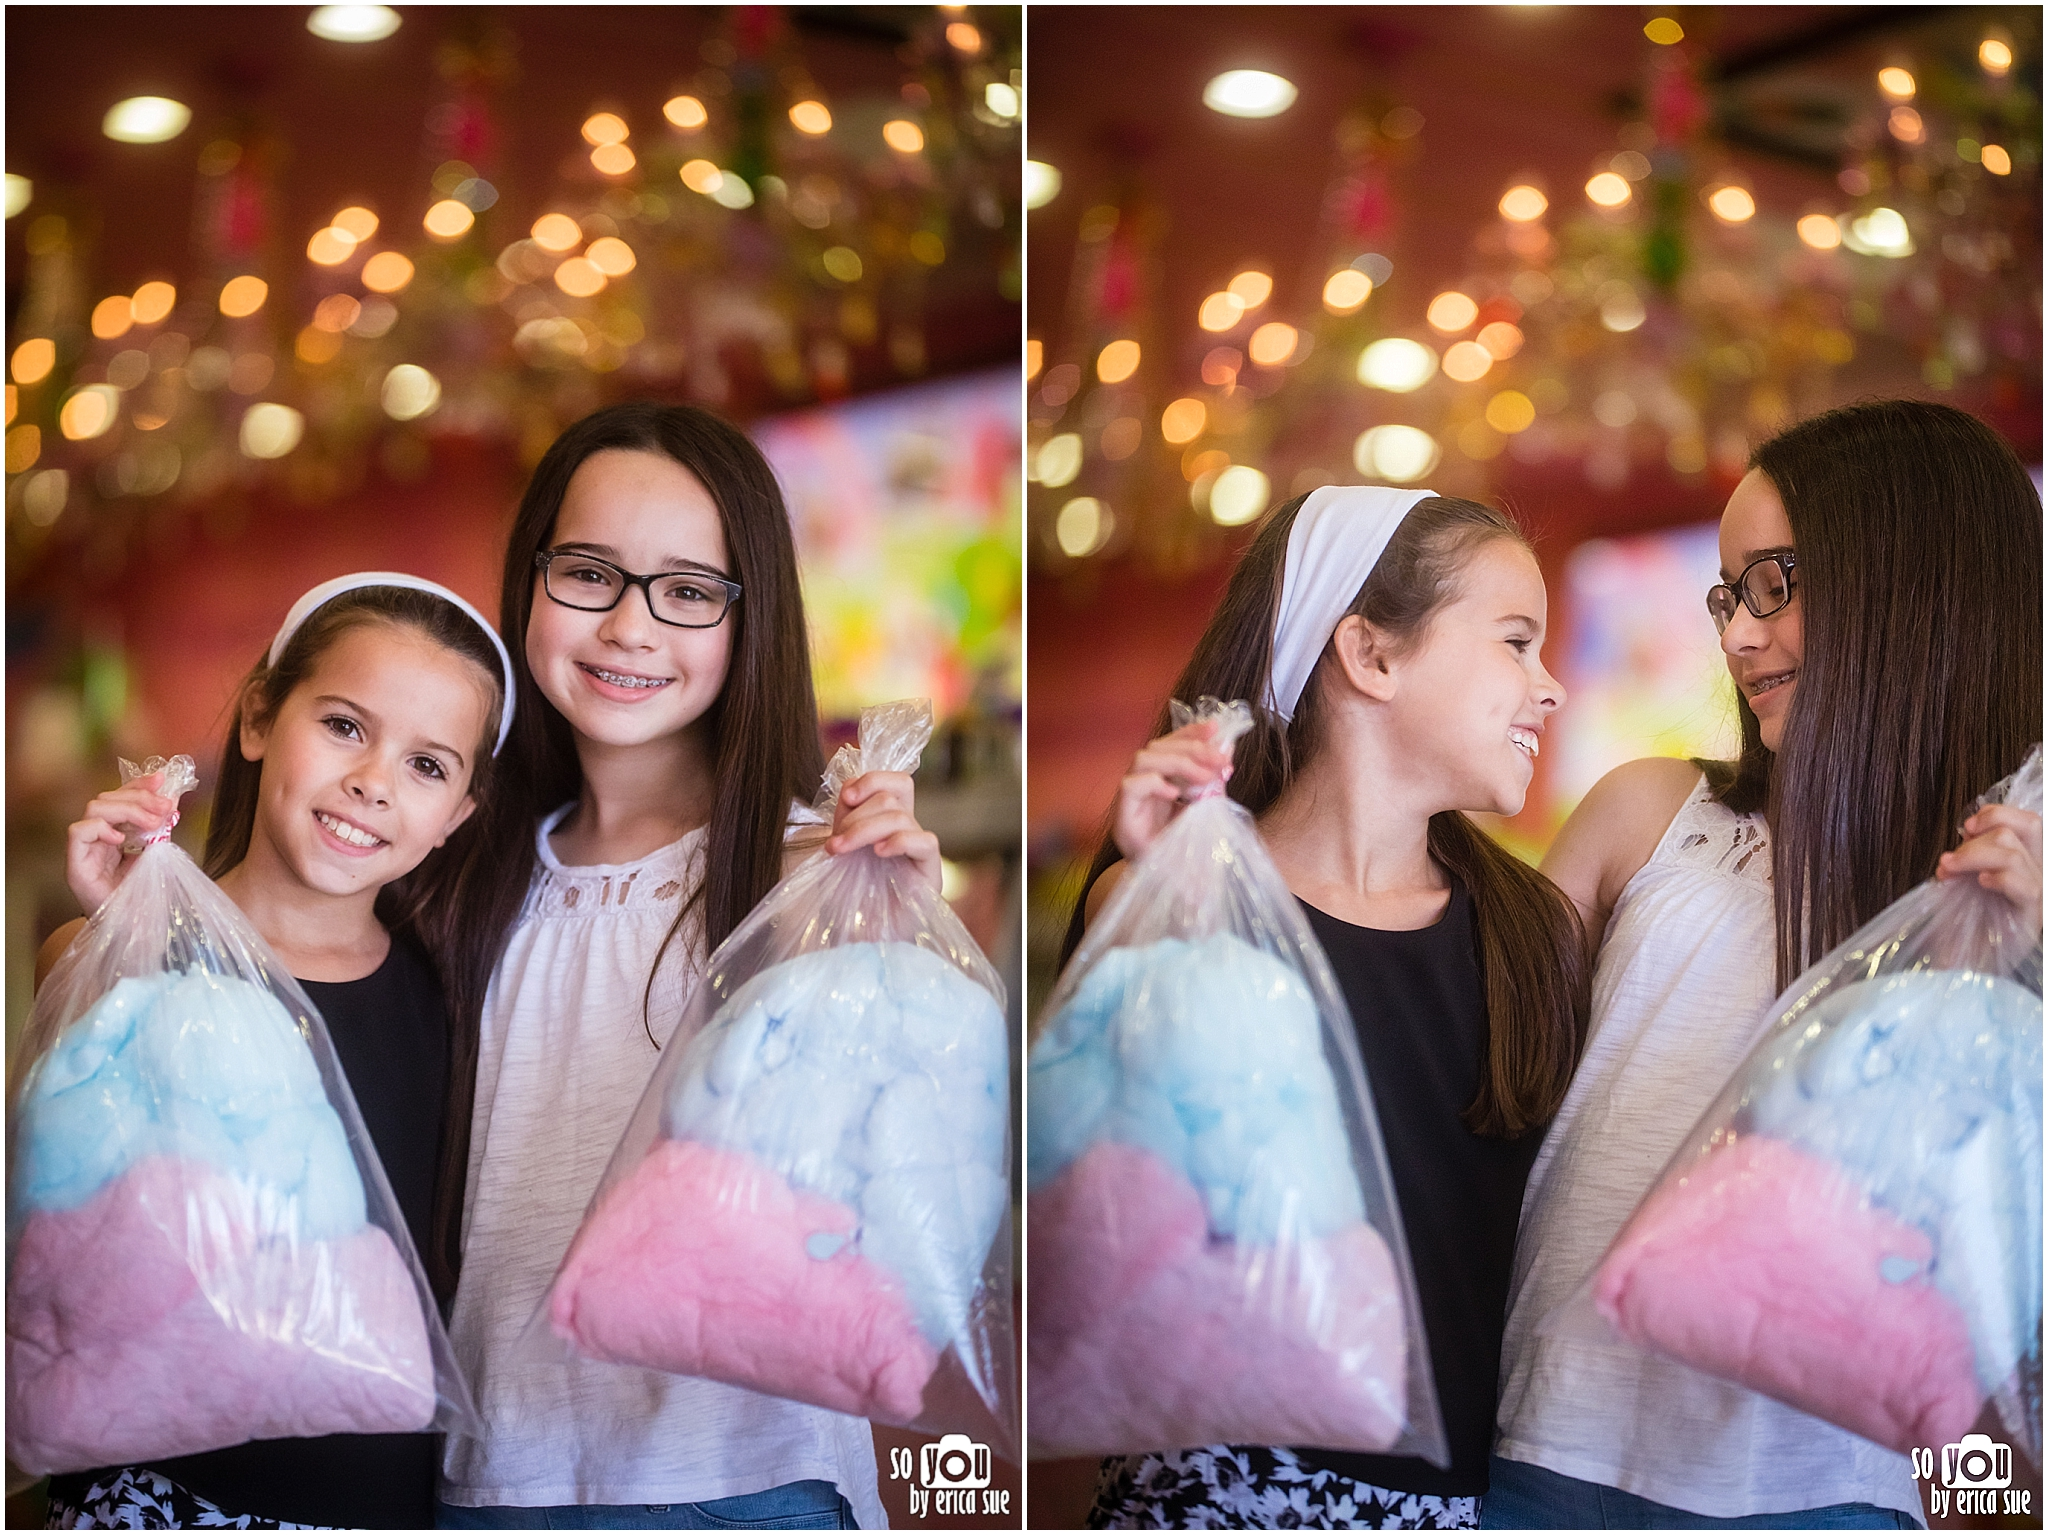 so-you-by-erica-sue-mitzvah-photographer-sloan's-lauderdale-by-the-sea-fl-0697 (2).jpg